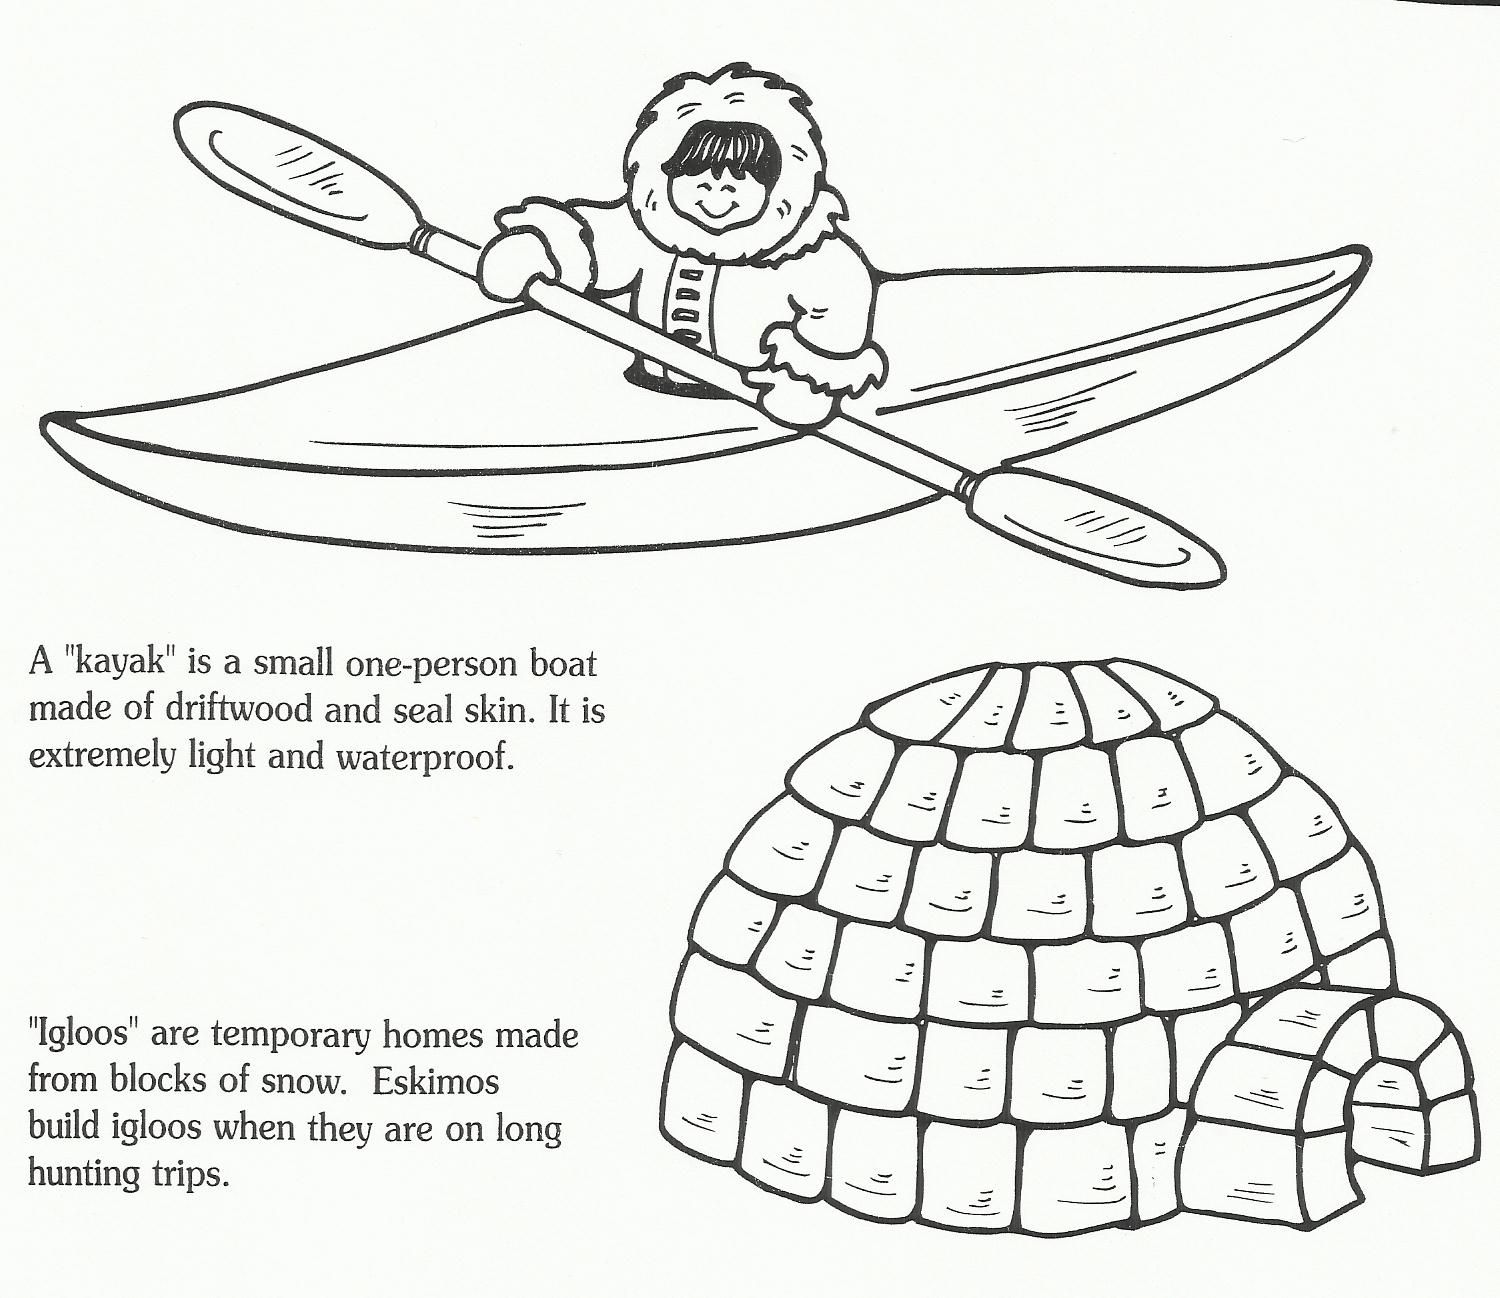 igloo coloring pages teachers - photo#41